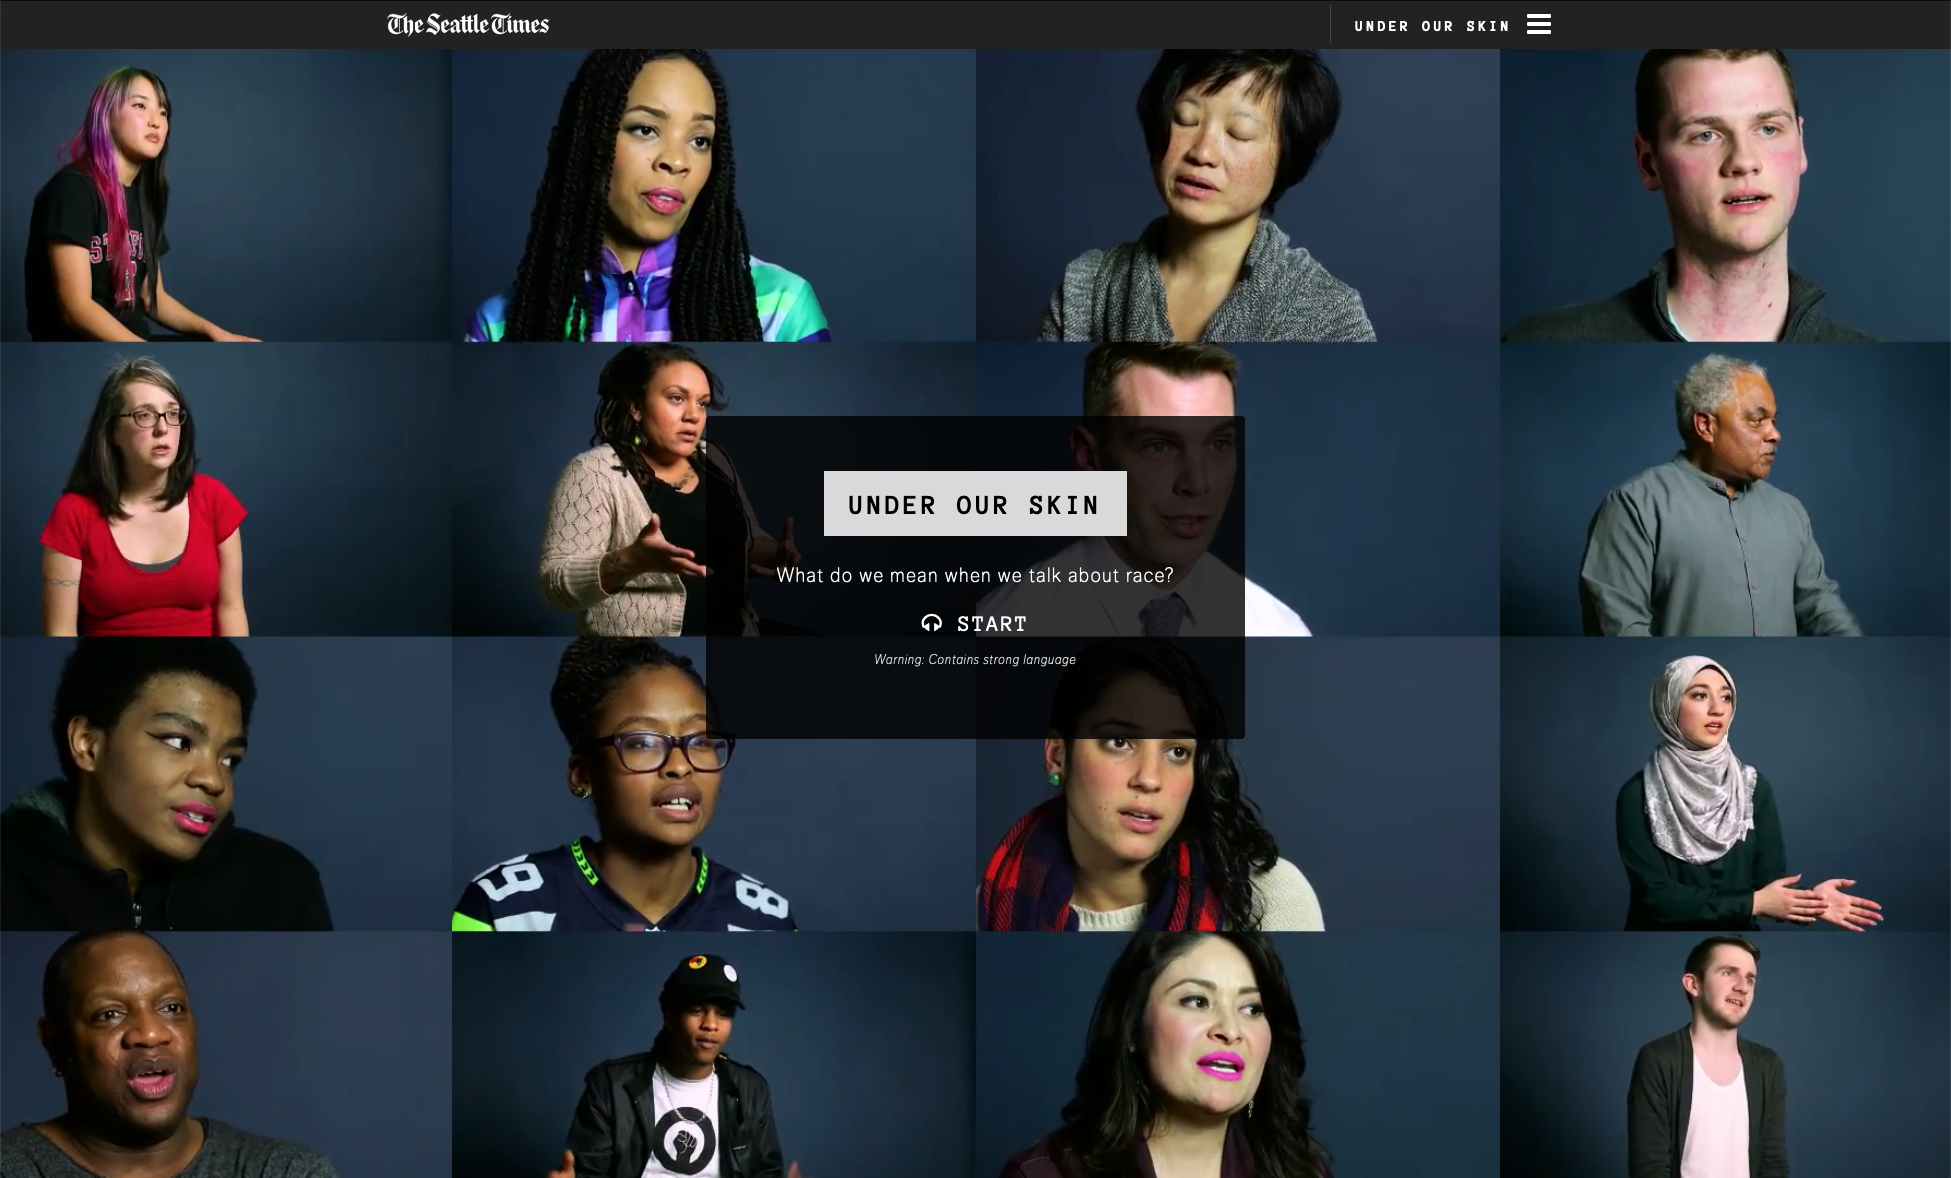 Composite image of 16 separate video interviews with people of varied racial and ethnic backgrounds.